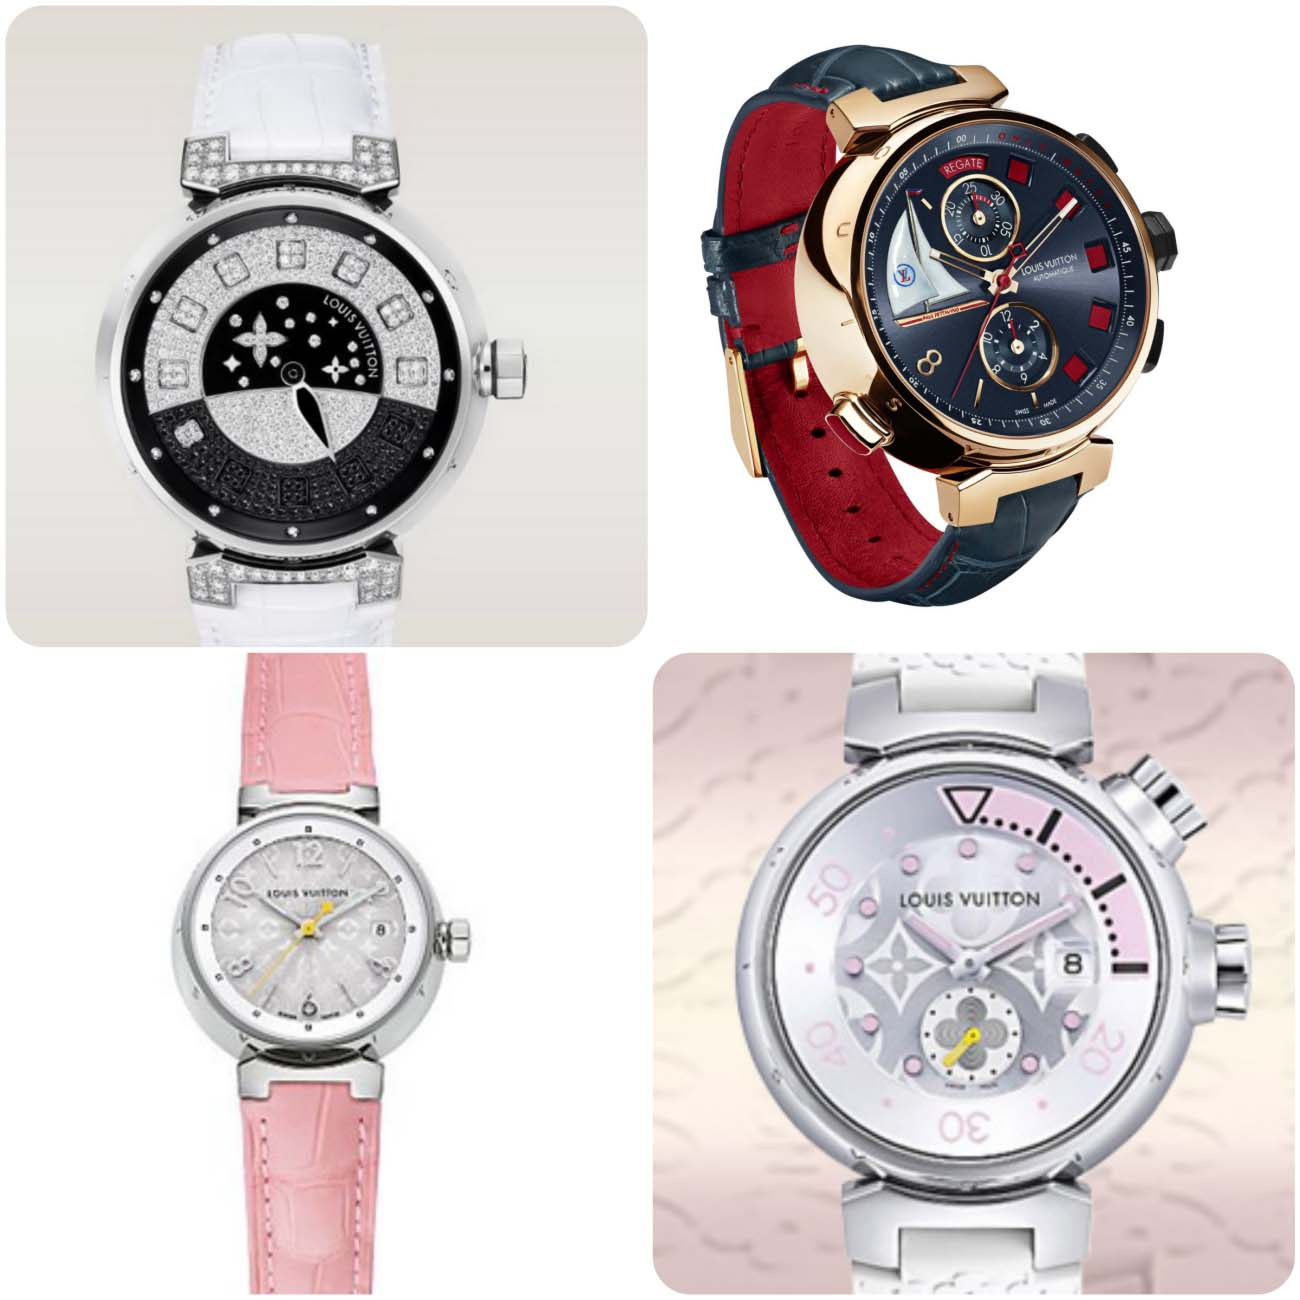 Louis Vuitton Spin women watches 2016